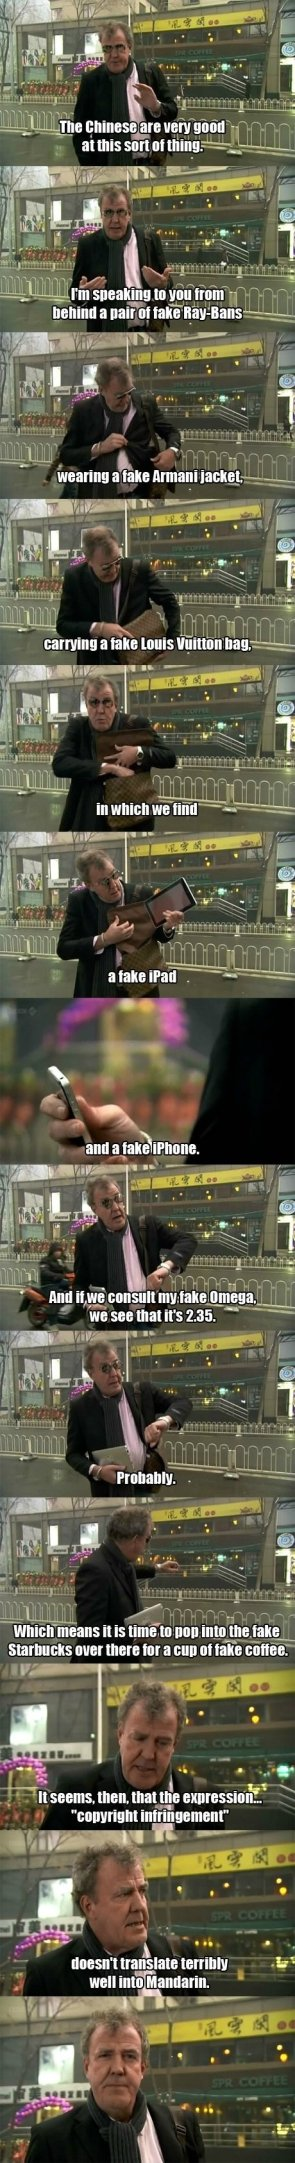 top gear on chinese